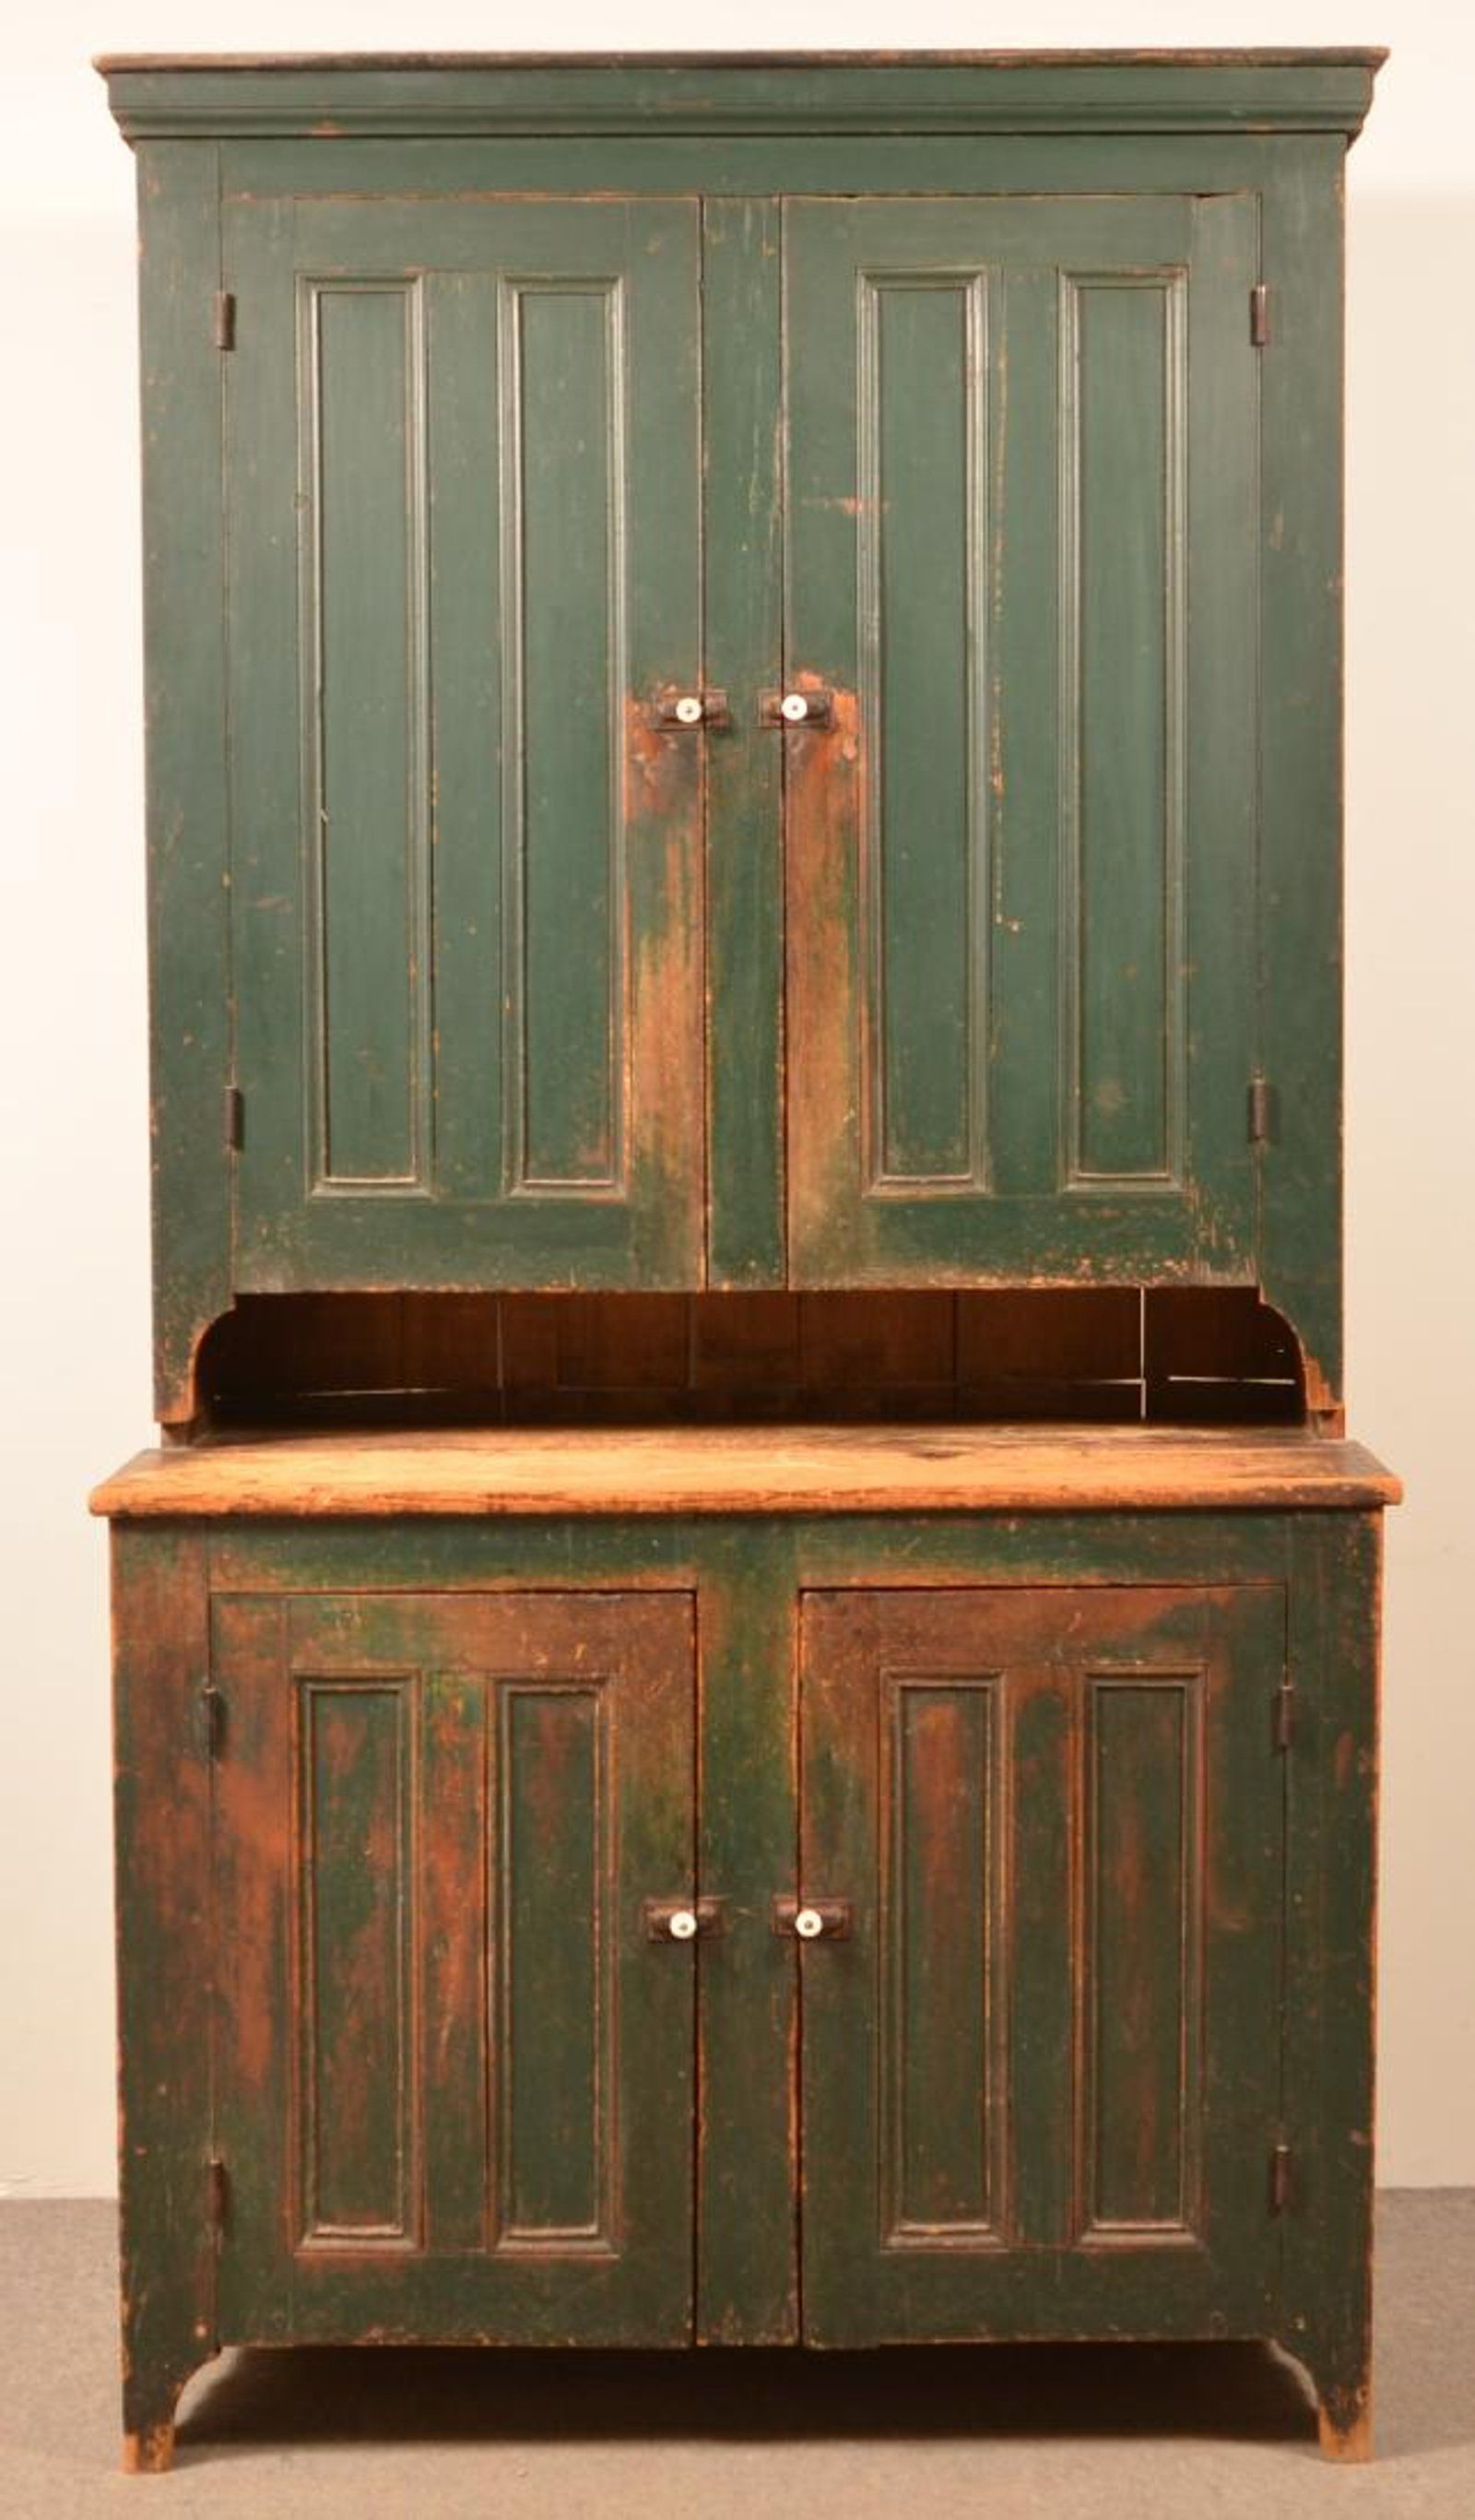 19th Century Softwood Two Part Step Back Kitchen Cupboard Original Green Paint 87 H X 47 1 2 W X 23 D Softwood Kitchen Cupboards Cupboard